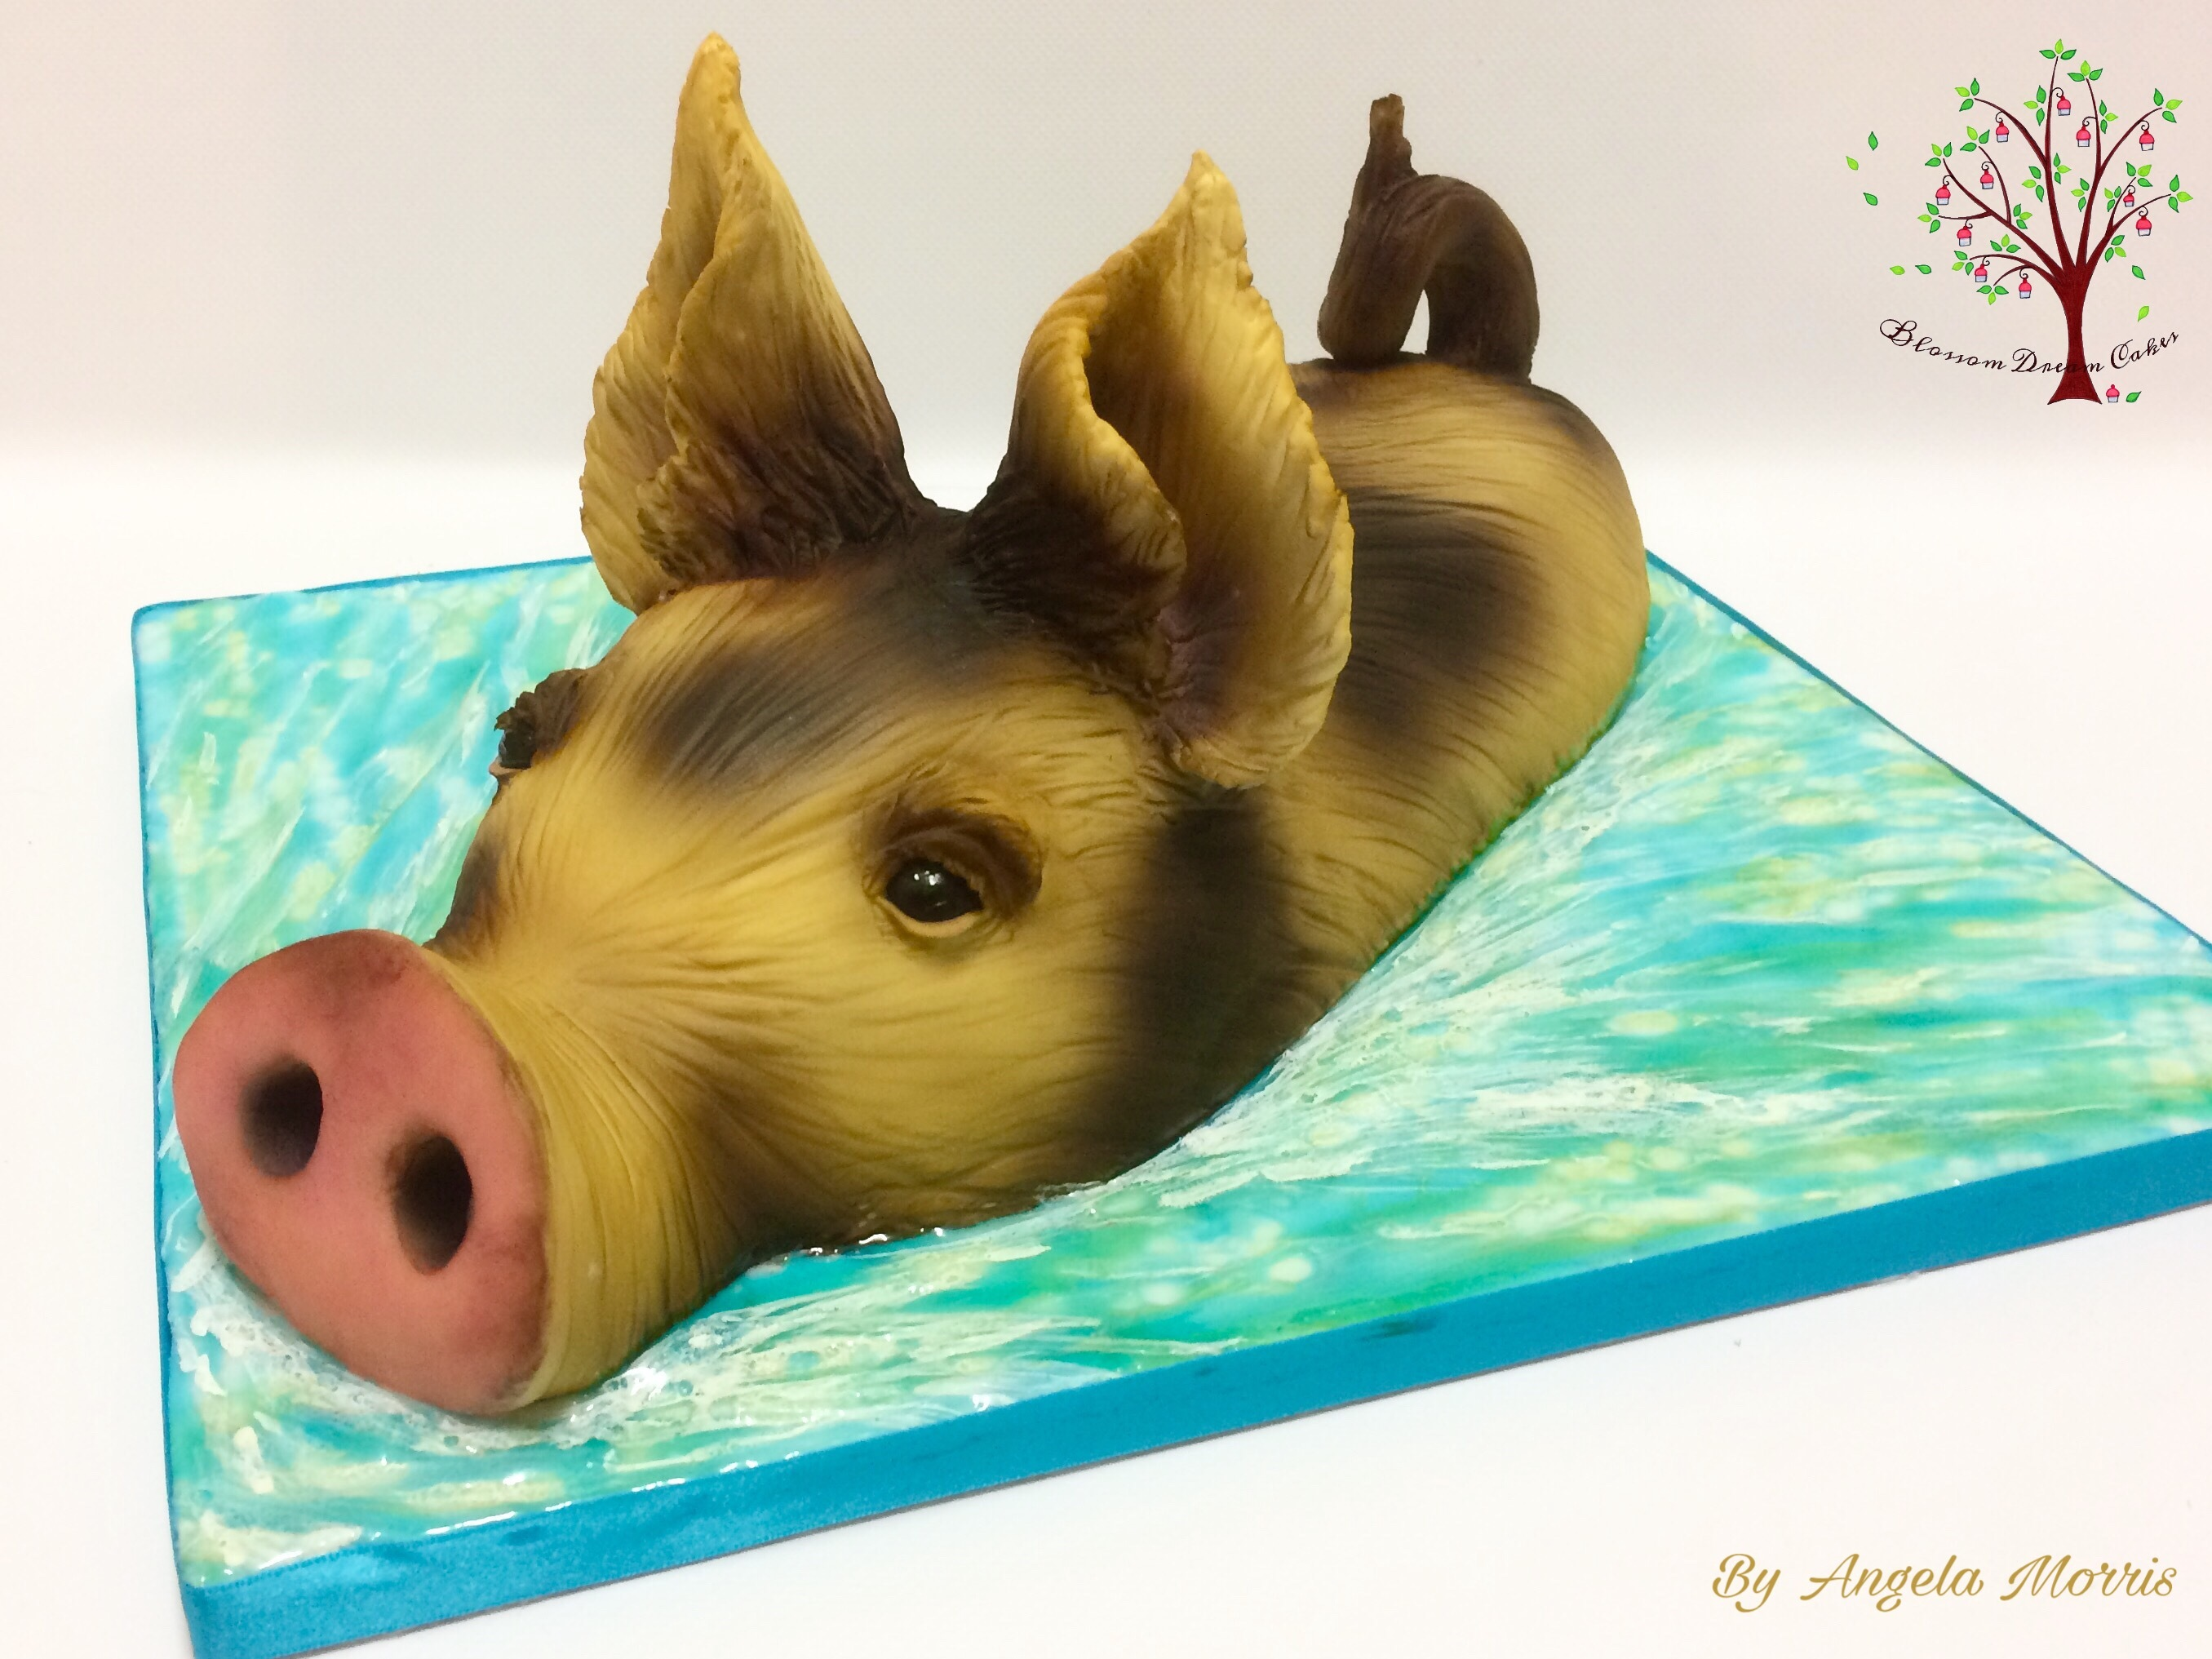 Animal-Rights-Angela-Morris-Blossom-Dream-Cakes-Pig.jpeg#asset:13713